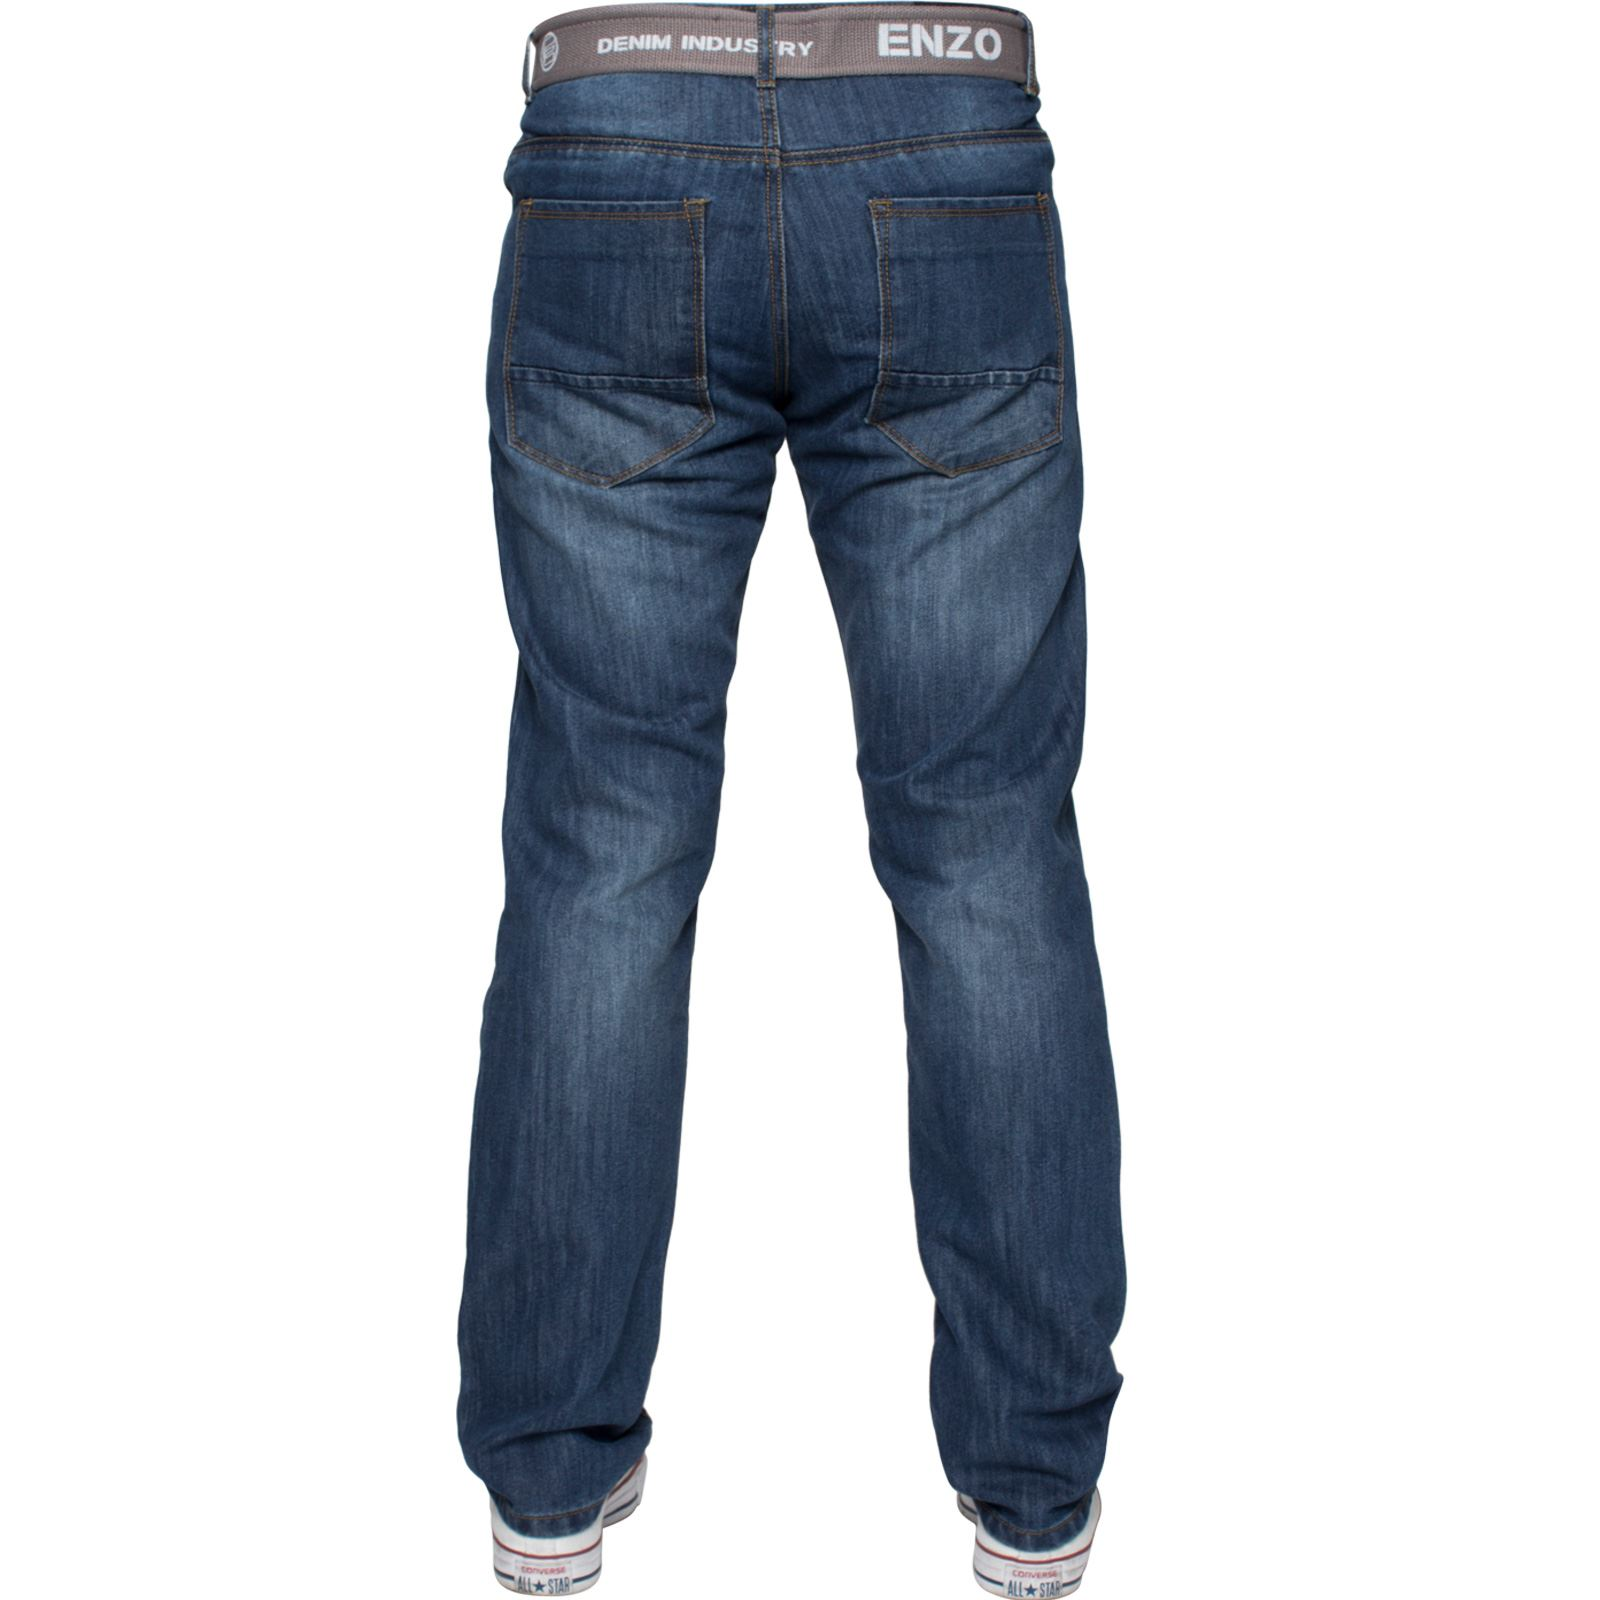 Enzo-Mens-Designer-Jeans-Regular-Fit-Denim-Pants-Big-Tall-All-Waist-Sizes thumbnail 10